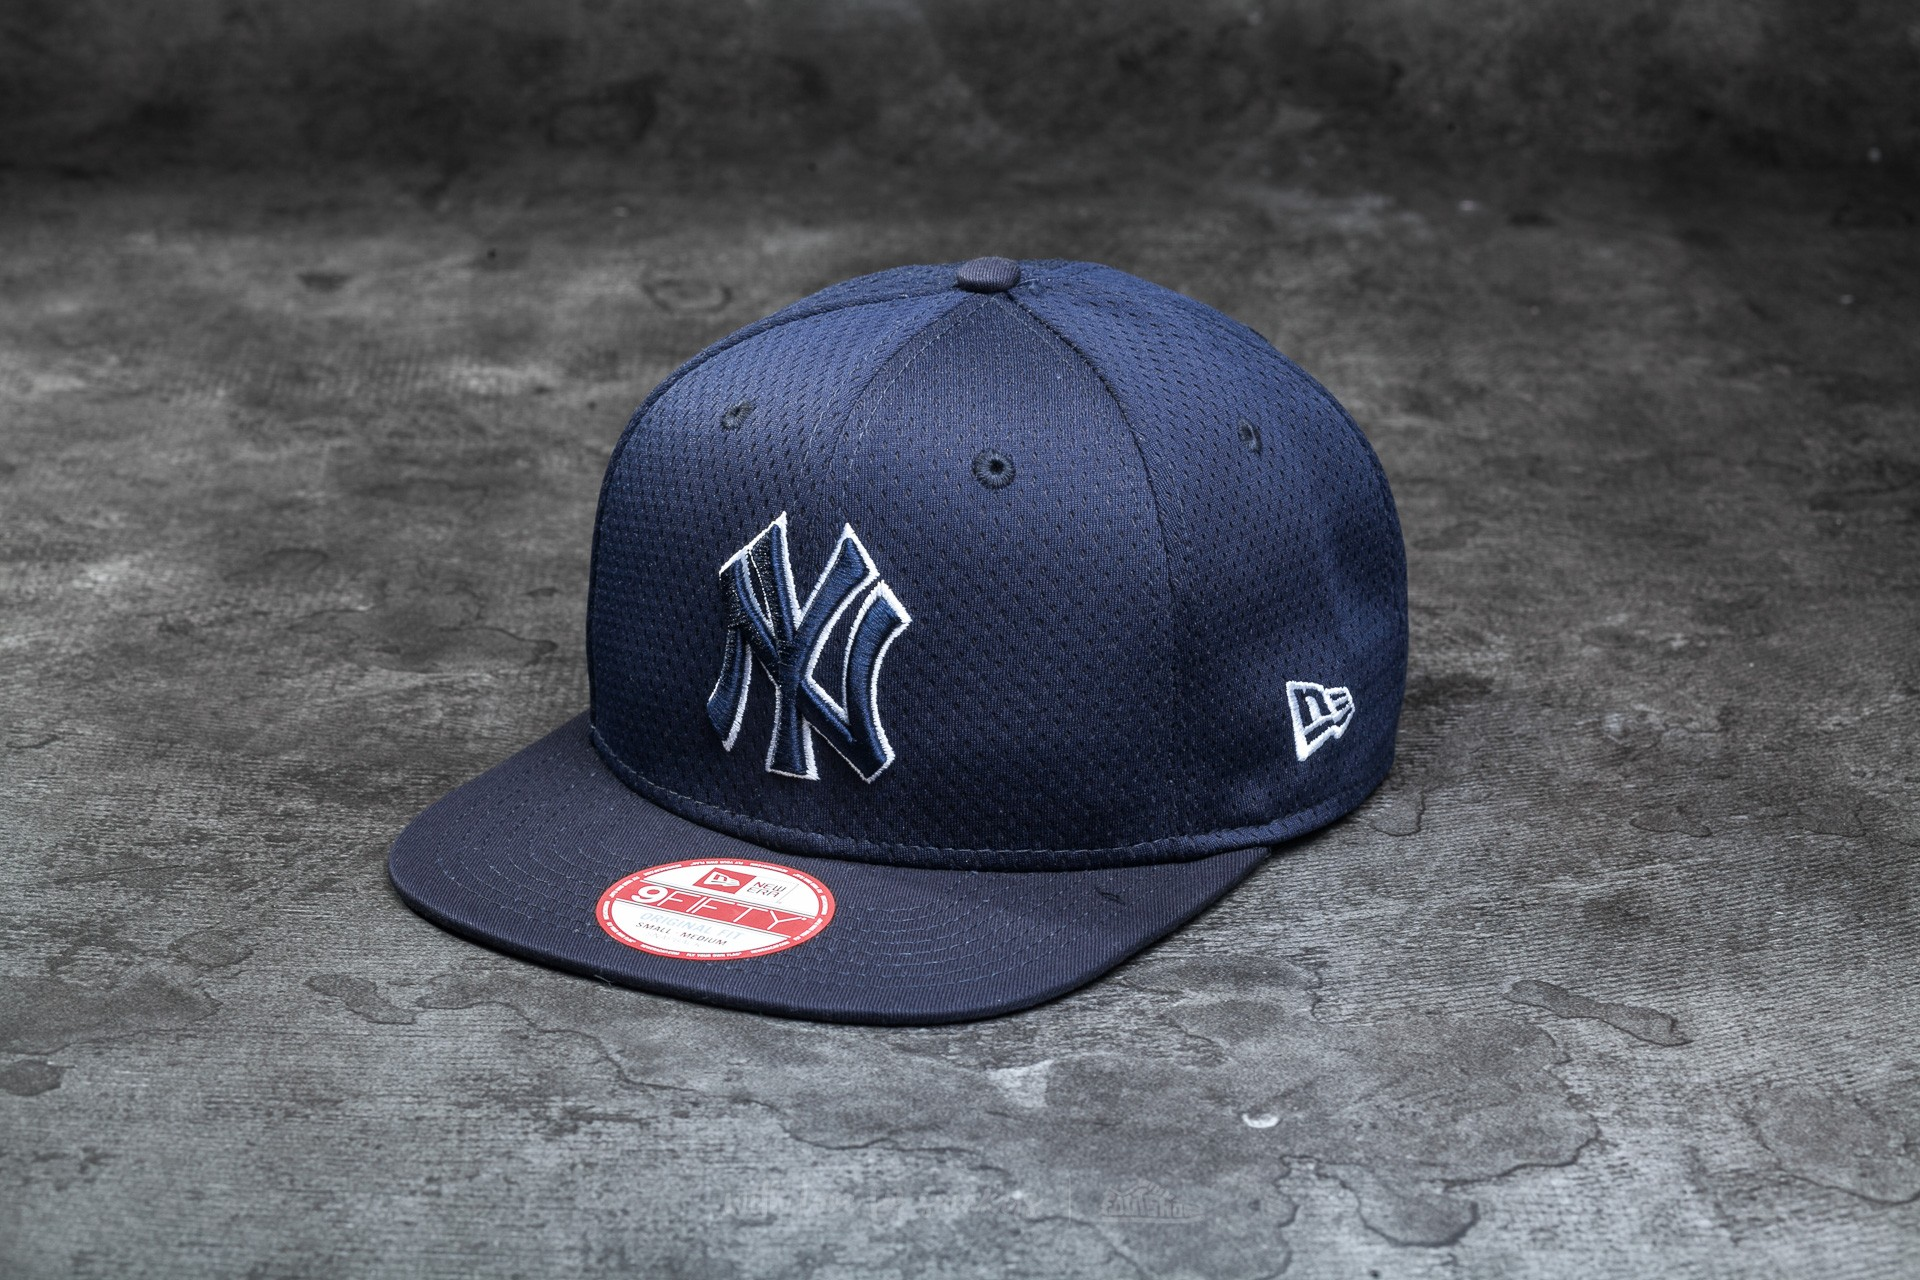 51147db0fa3 New Era Major League Baseball Outline Mesh New York Yankees Cap Navy